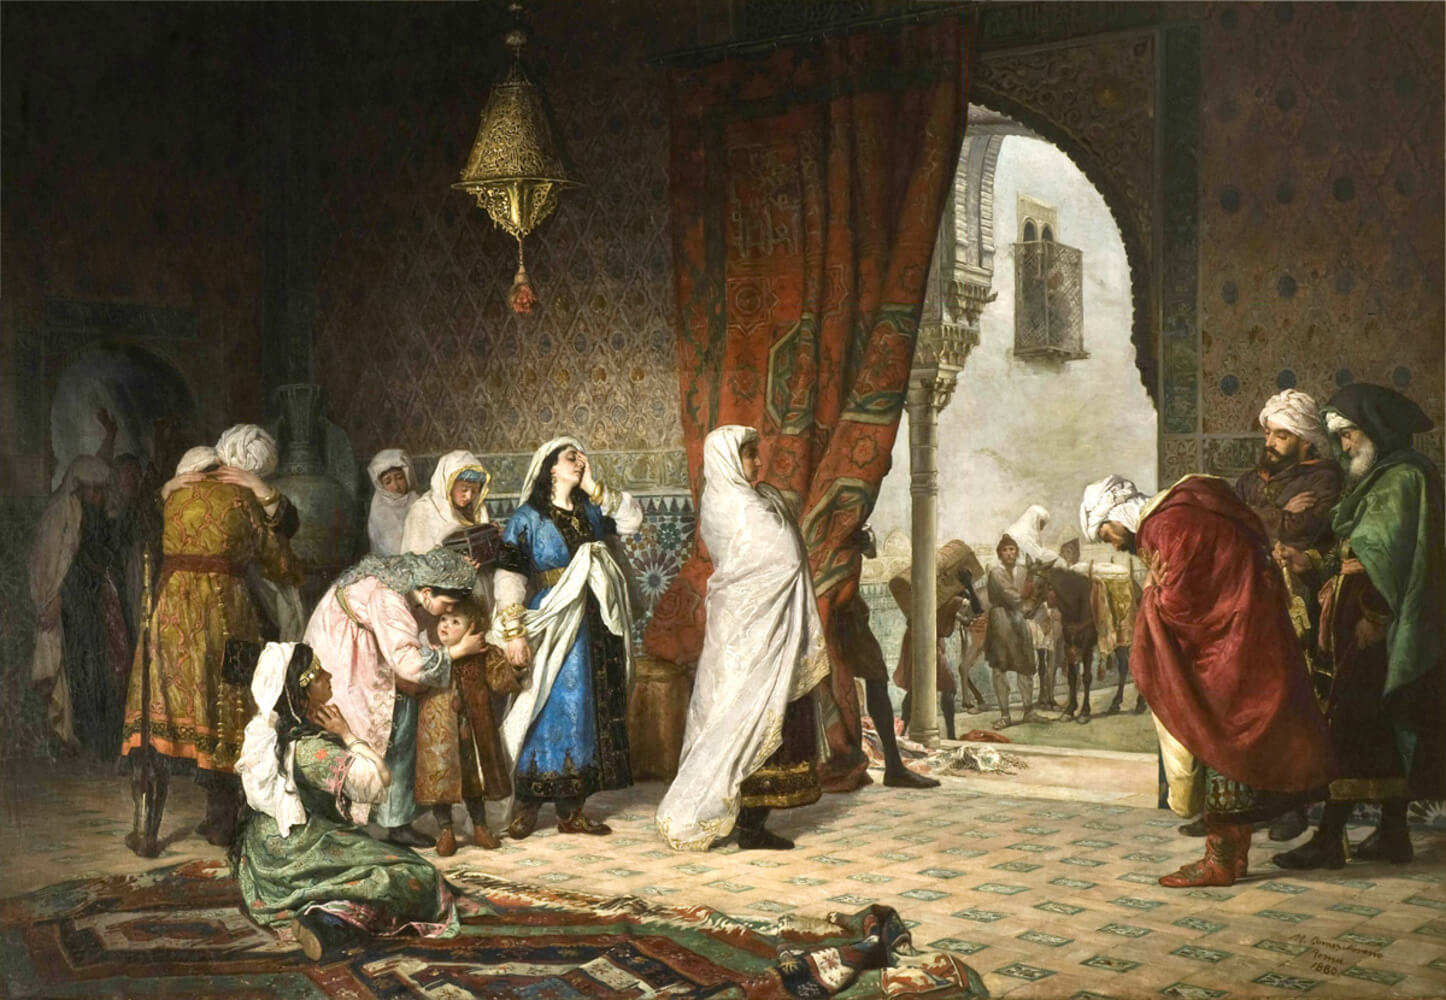 Al andalus, Islamic influence in Spain